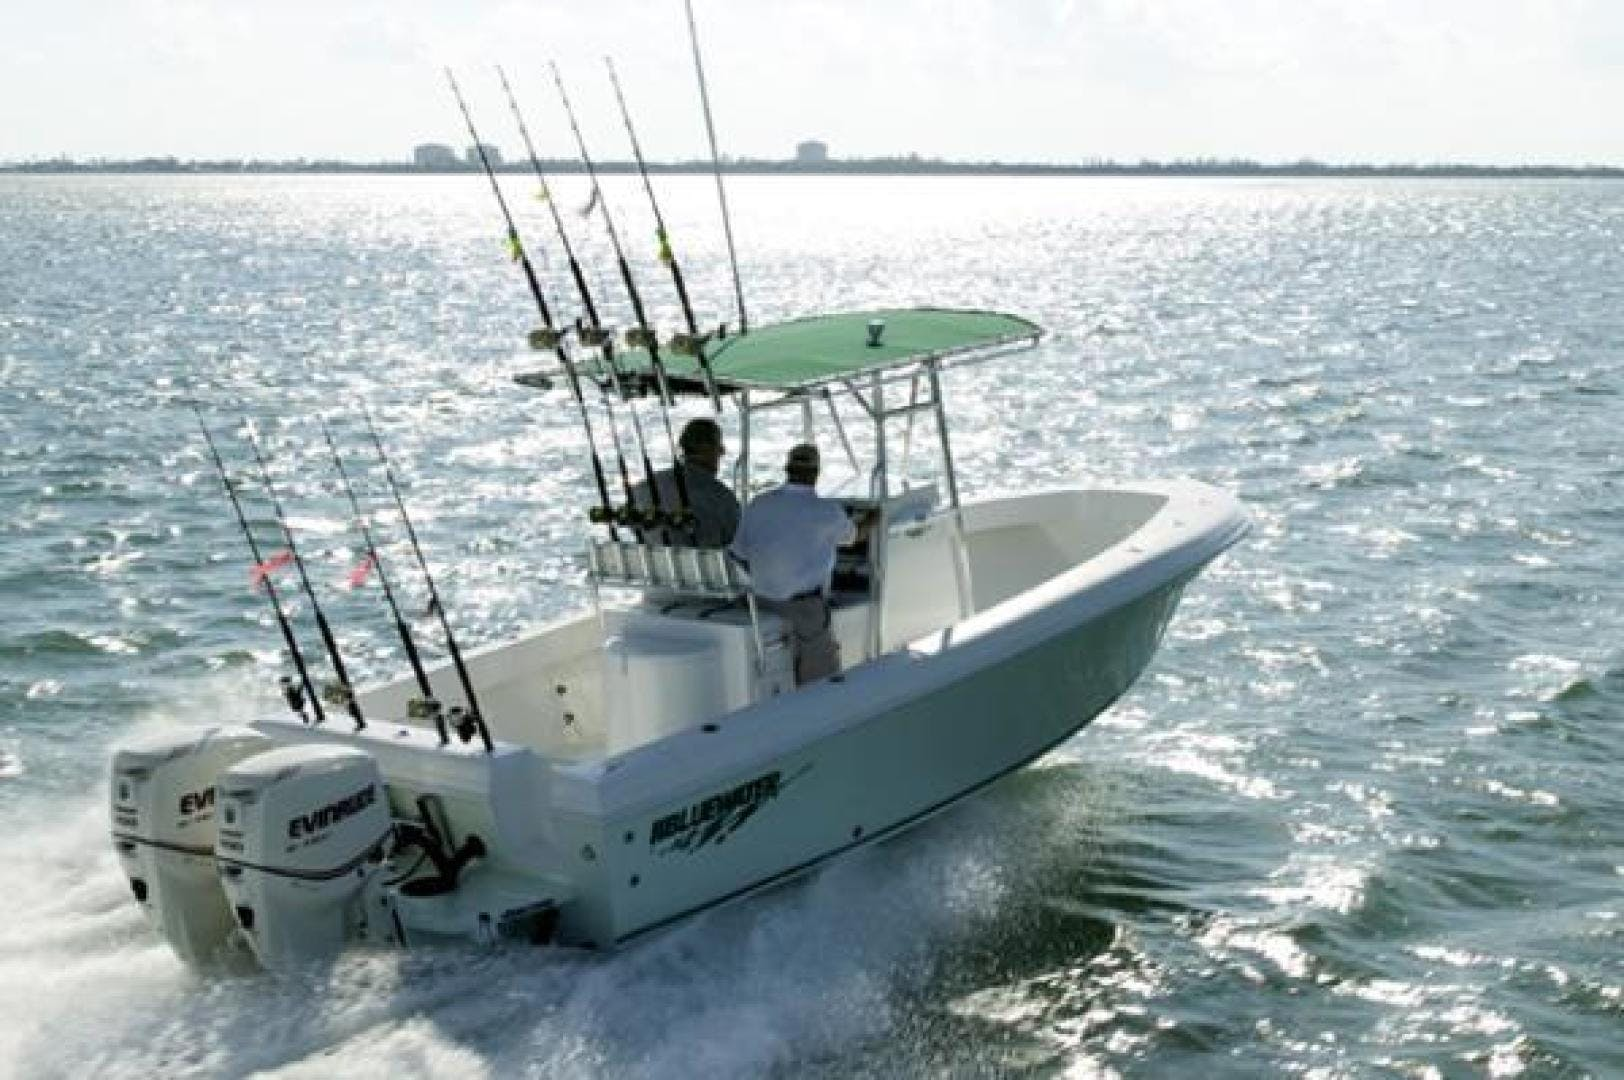 2020 Bluewater Sportfishing 22' 23t Bluewater Sportfishing 23t | Picture 2 of 7